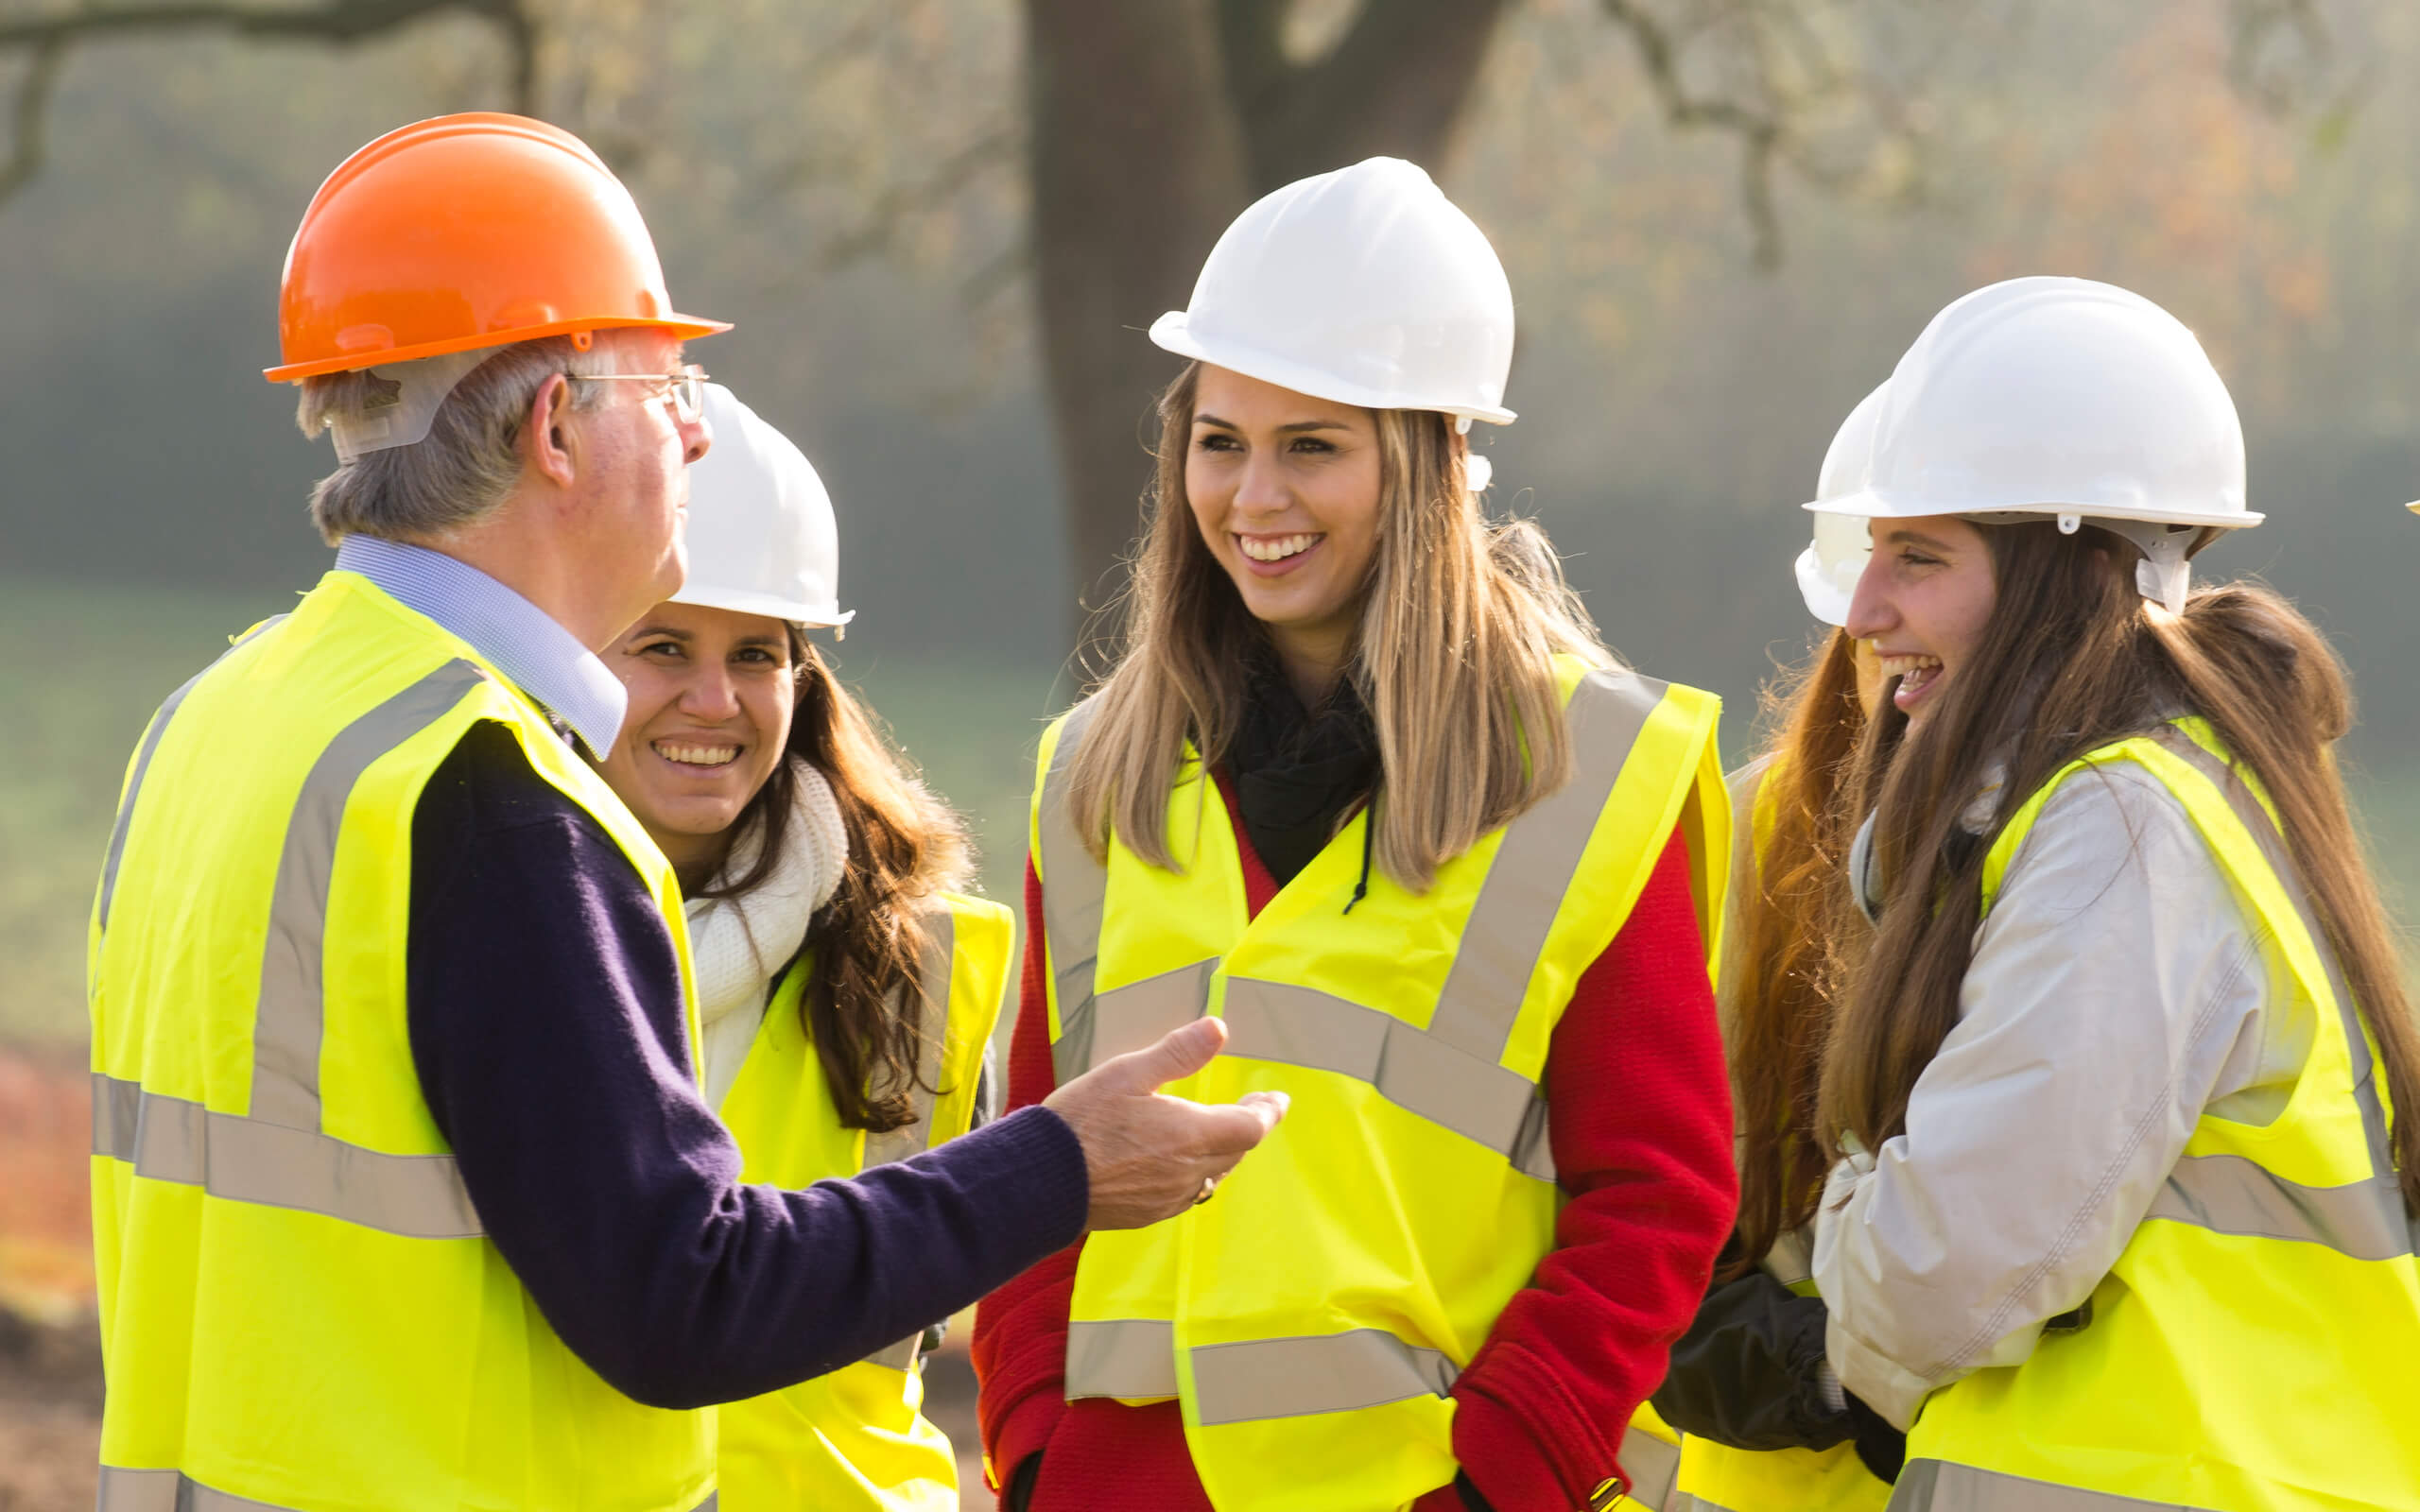 Students on a construction site location visit